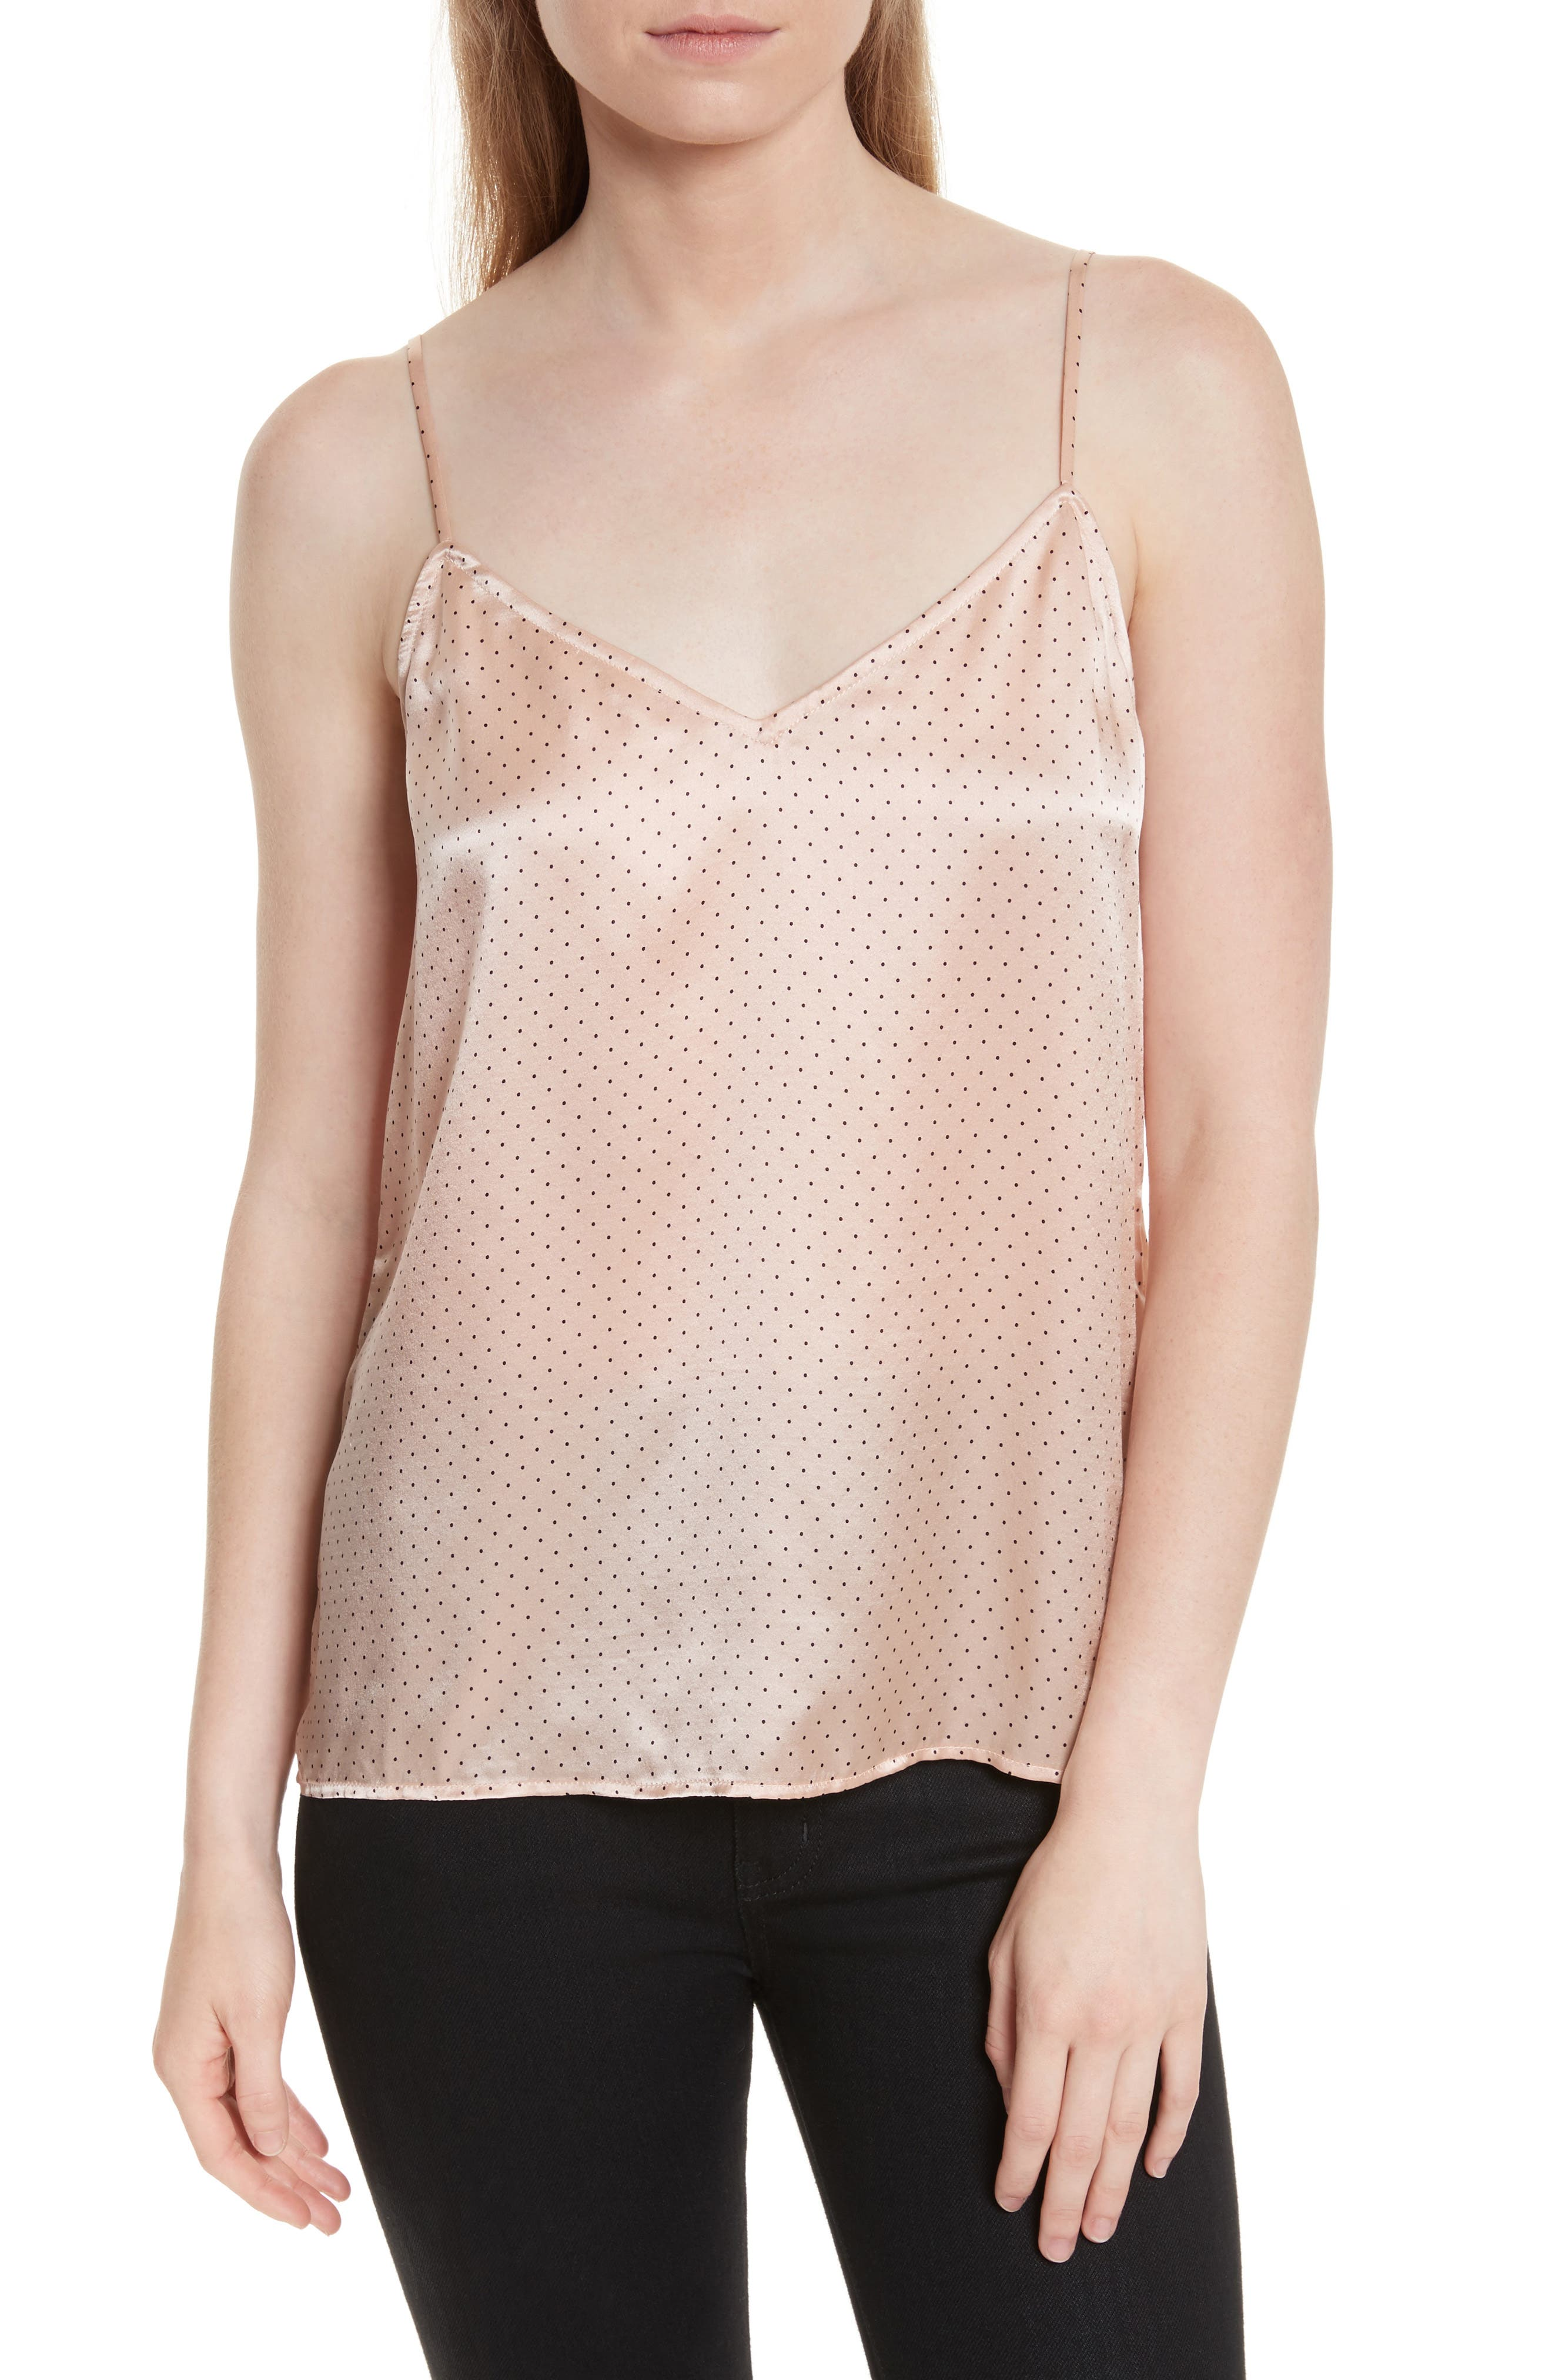 Alternate Image 1 Selected - Equipment Layla Heart Print Silk Camisole